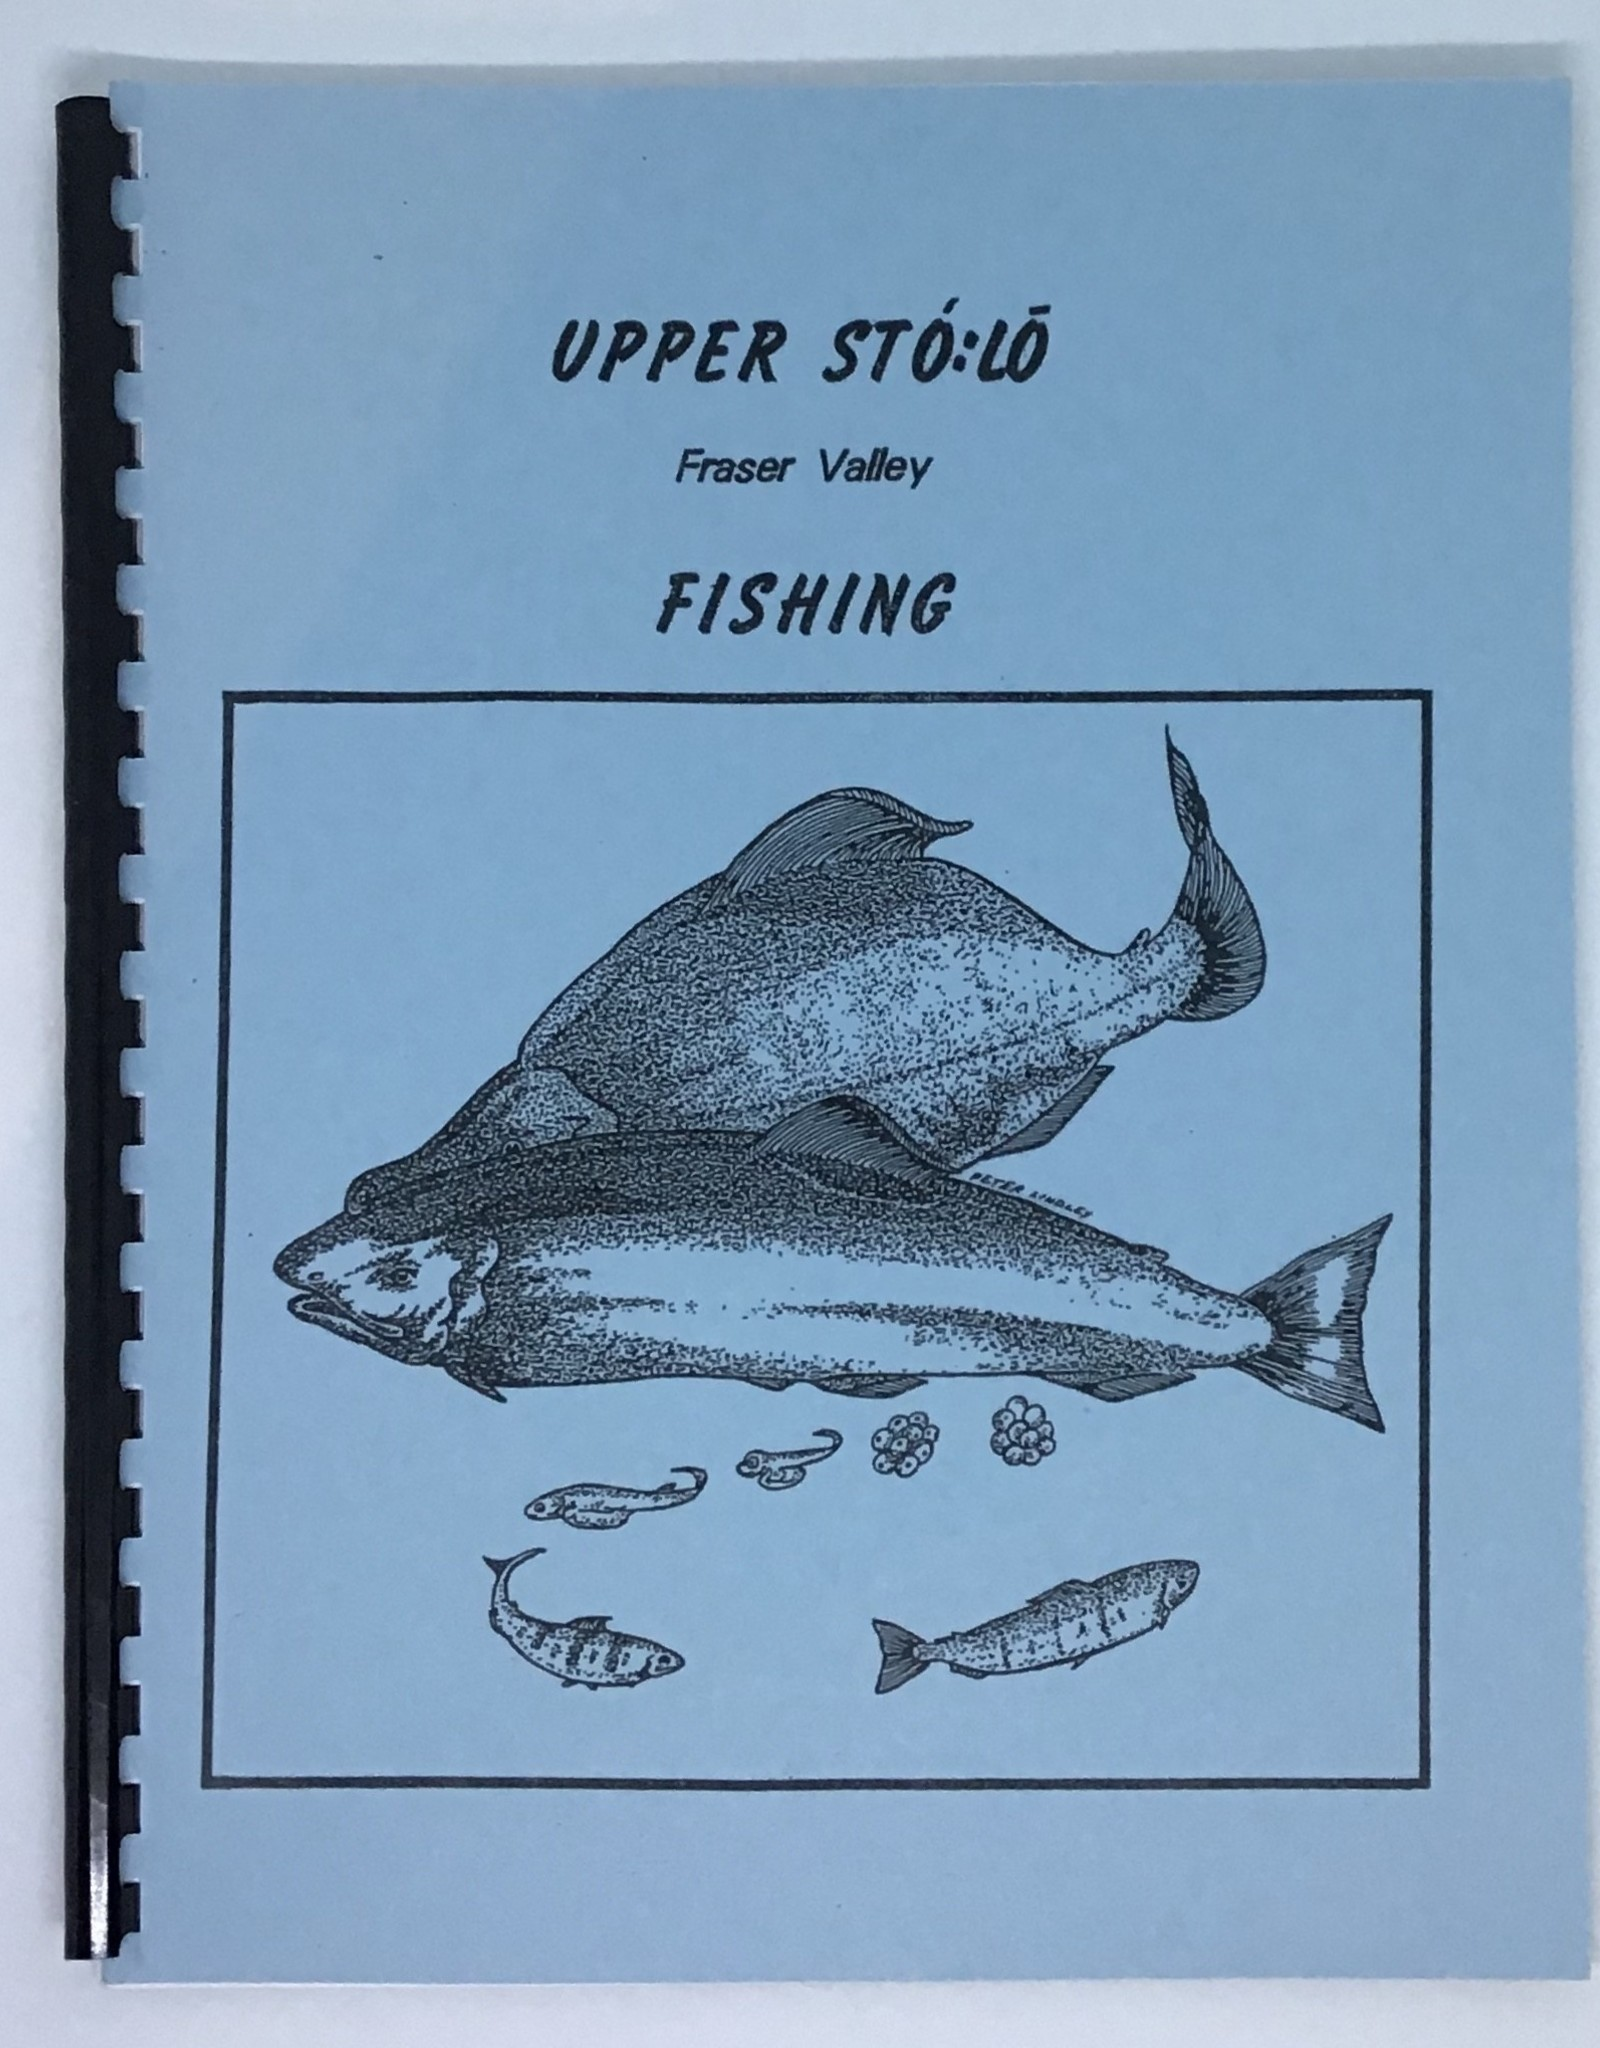 Upper Sto:lo Fraser Valley Fishing